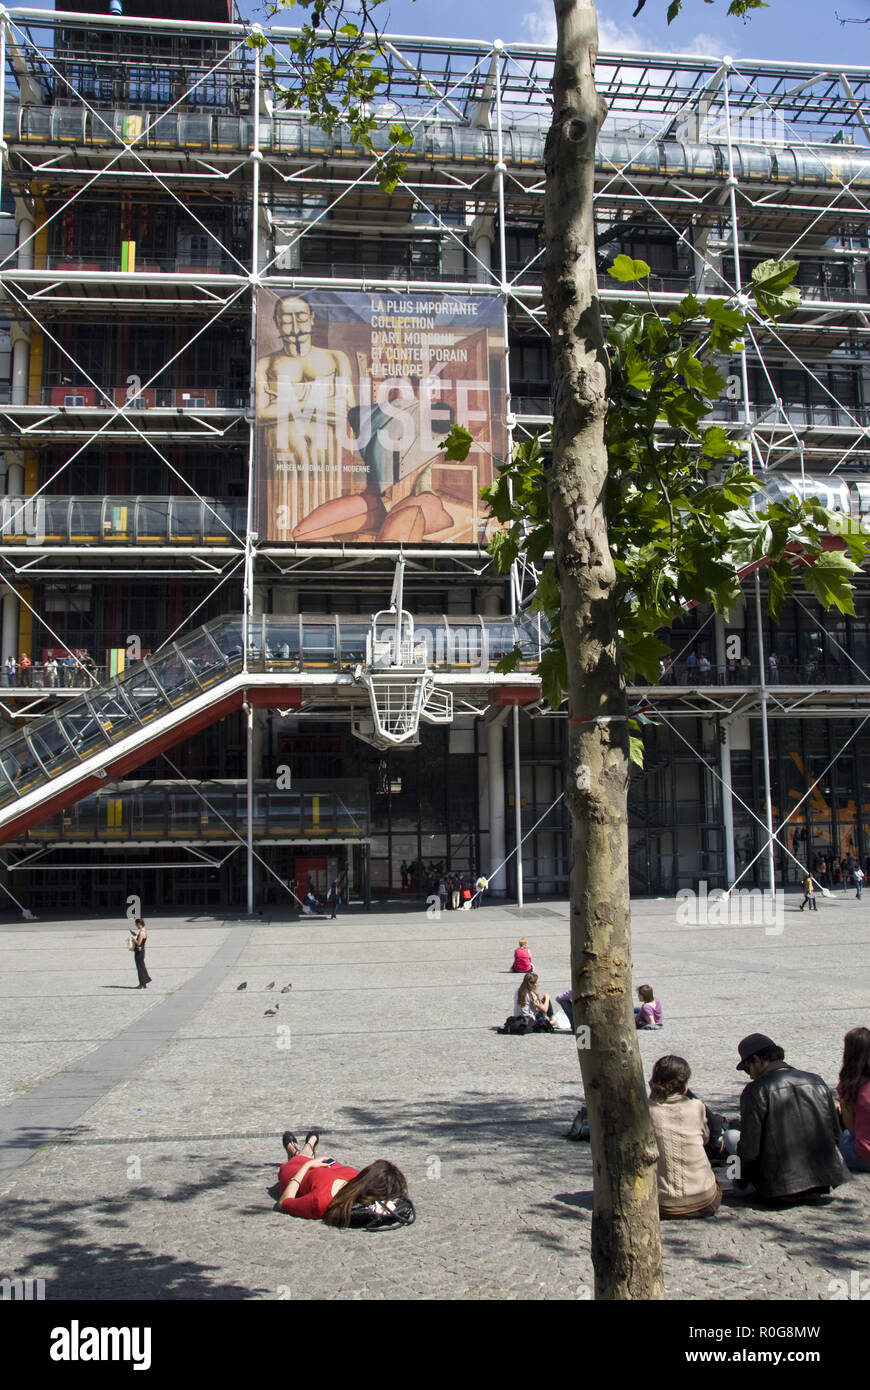 People relax on the plaza outside the Centre Georges Pompidou (Pompidou Center), a Postmodern multicultural arts complex, Paris, France. Stock Photo